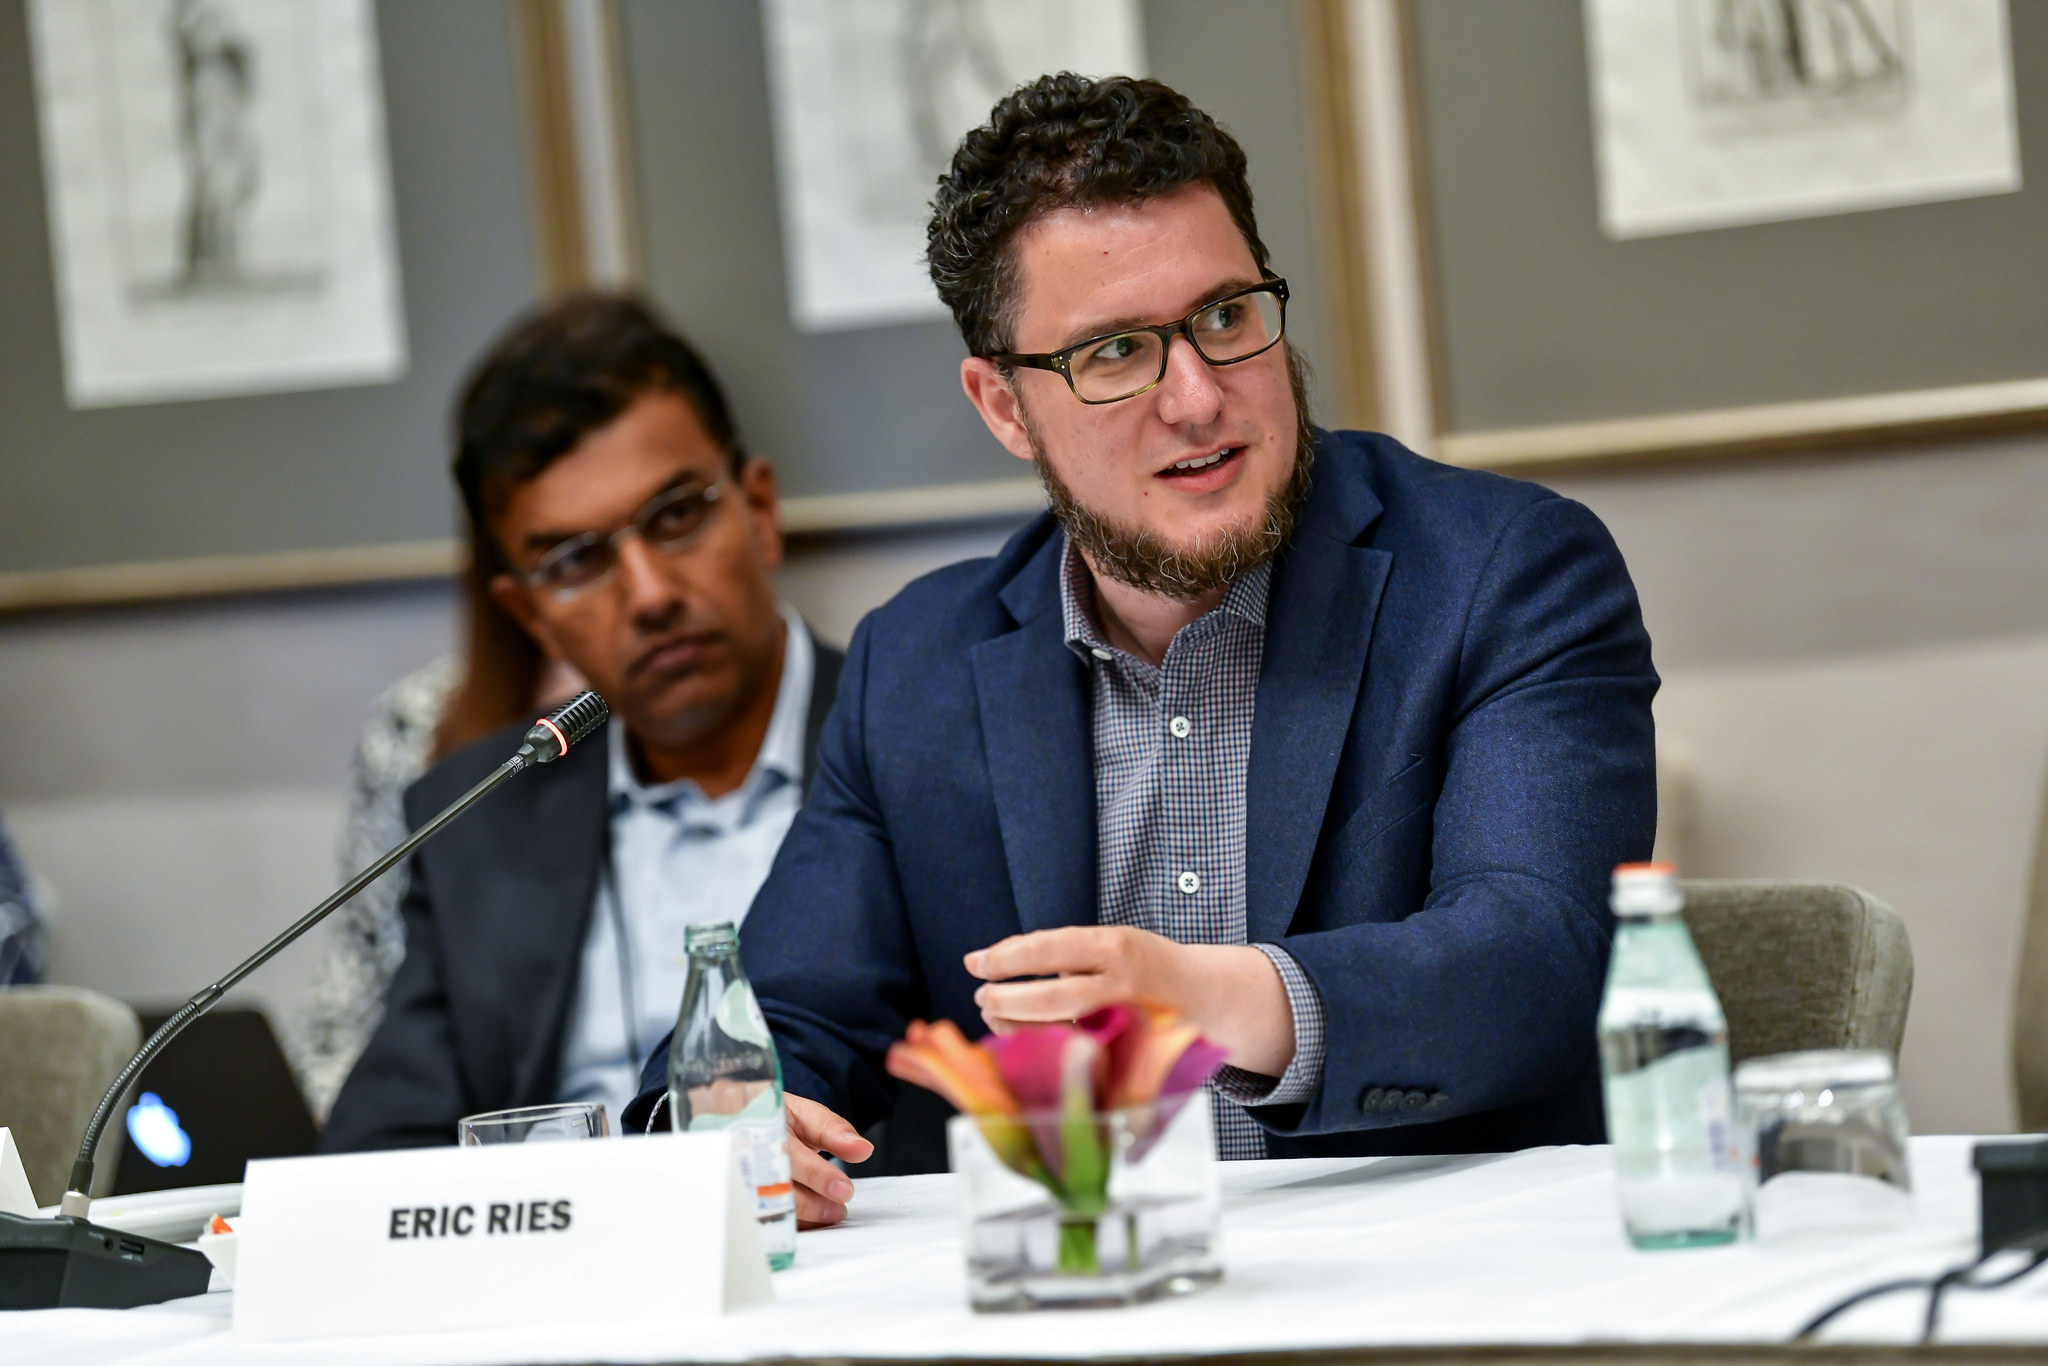 Eric Ries, author of The Lean Startup and founder and CEO of The Long-Term Stock Exchange discusses innovating like a startup at the Fortune CEO Initiative 2018 Annual Meeting June 25th, 2018 San Francisco, Calif.